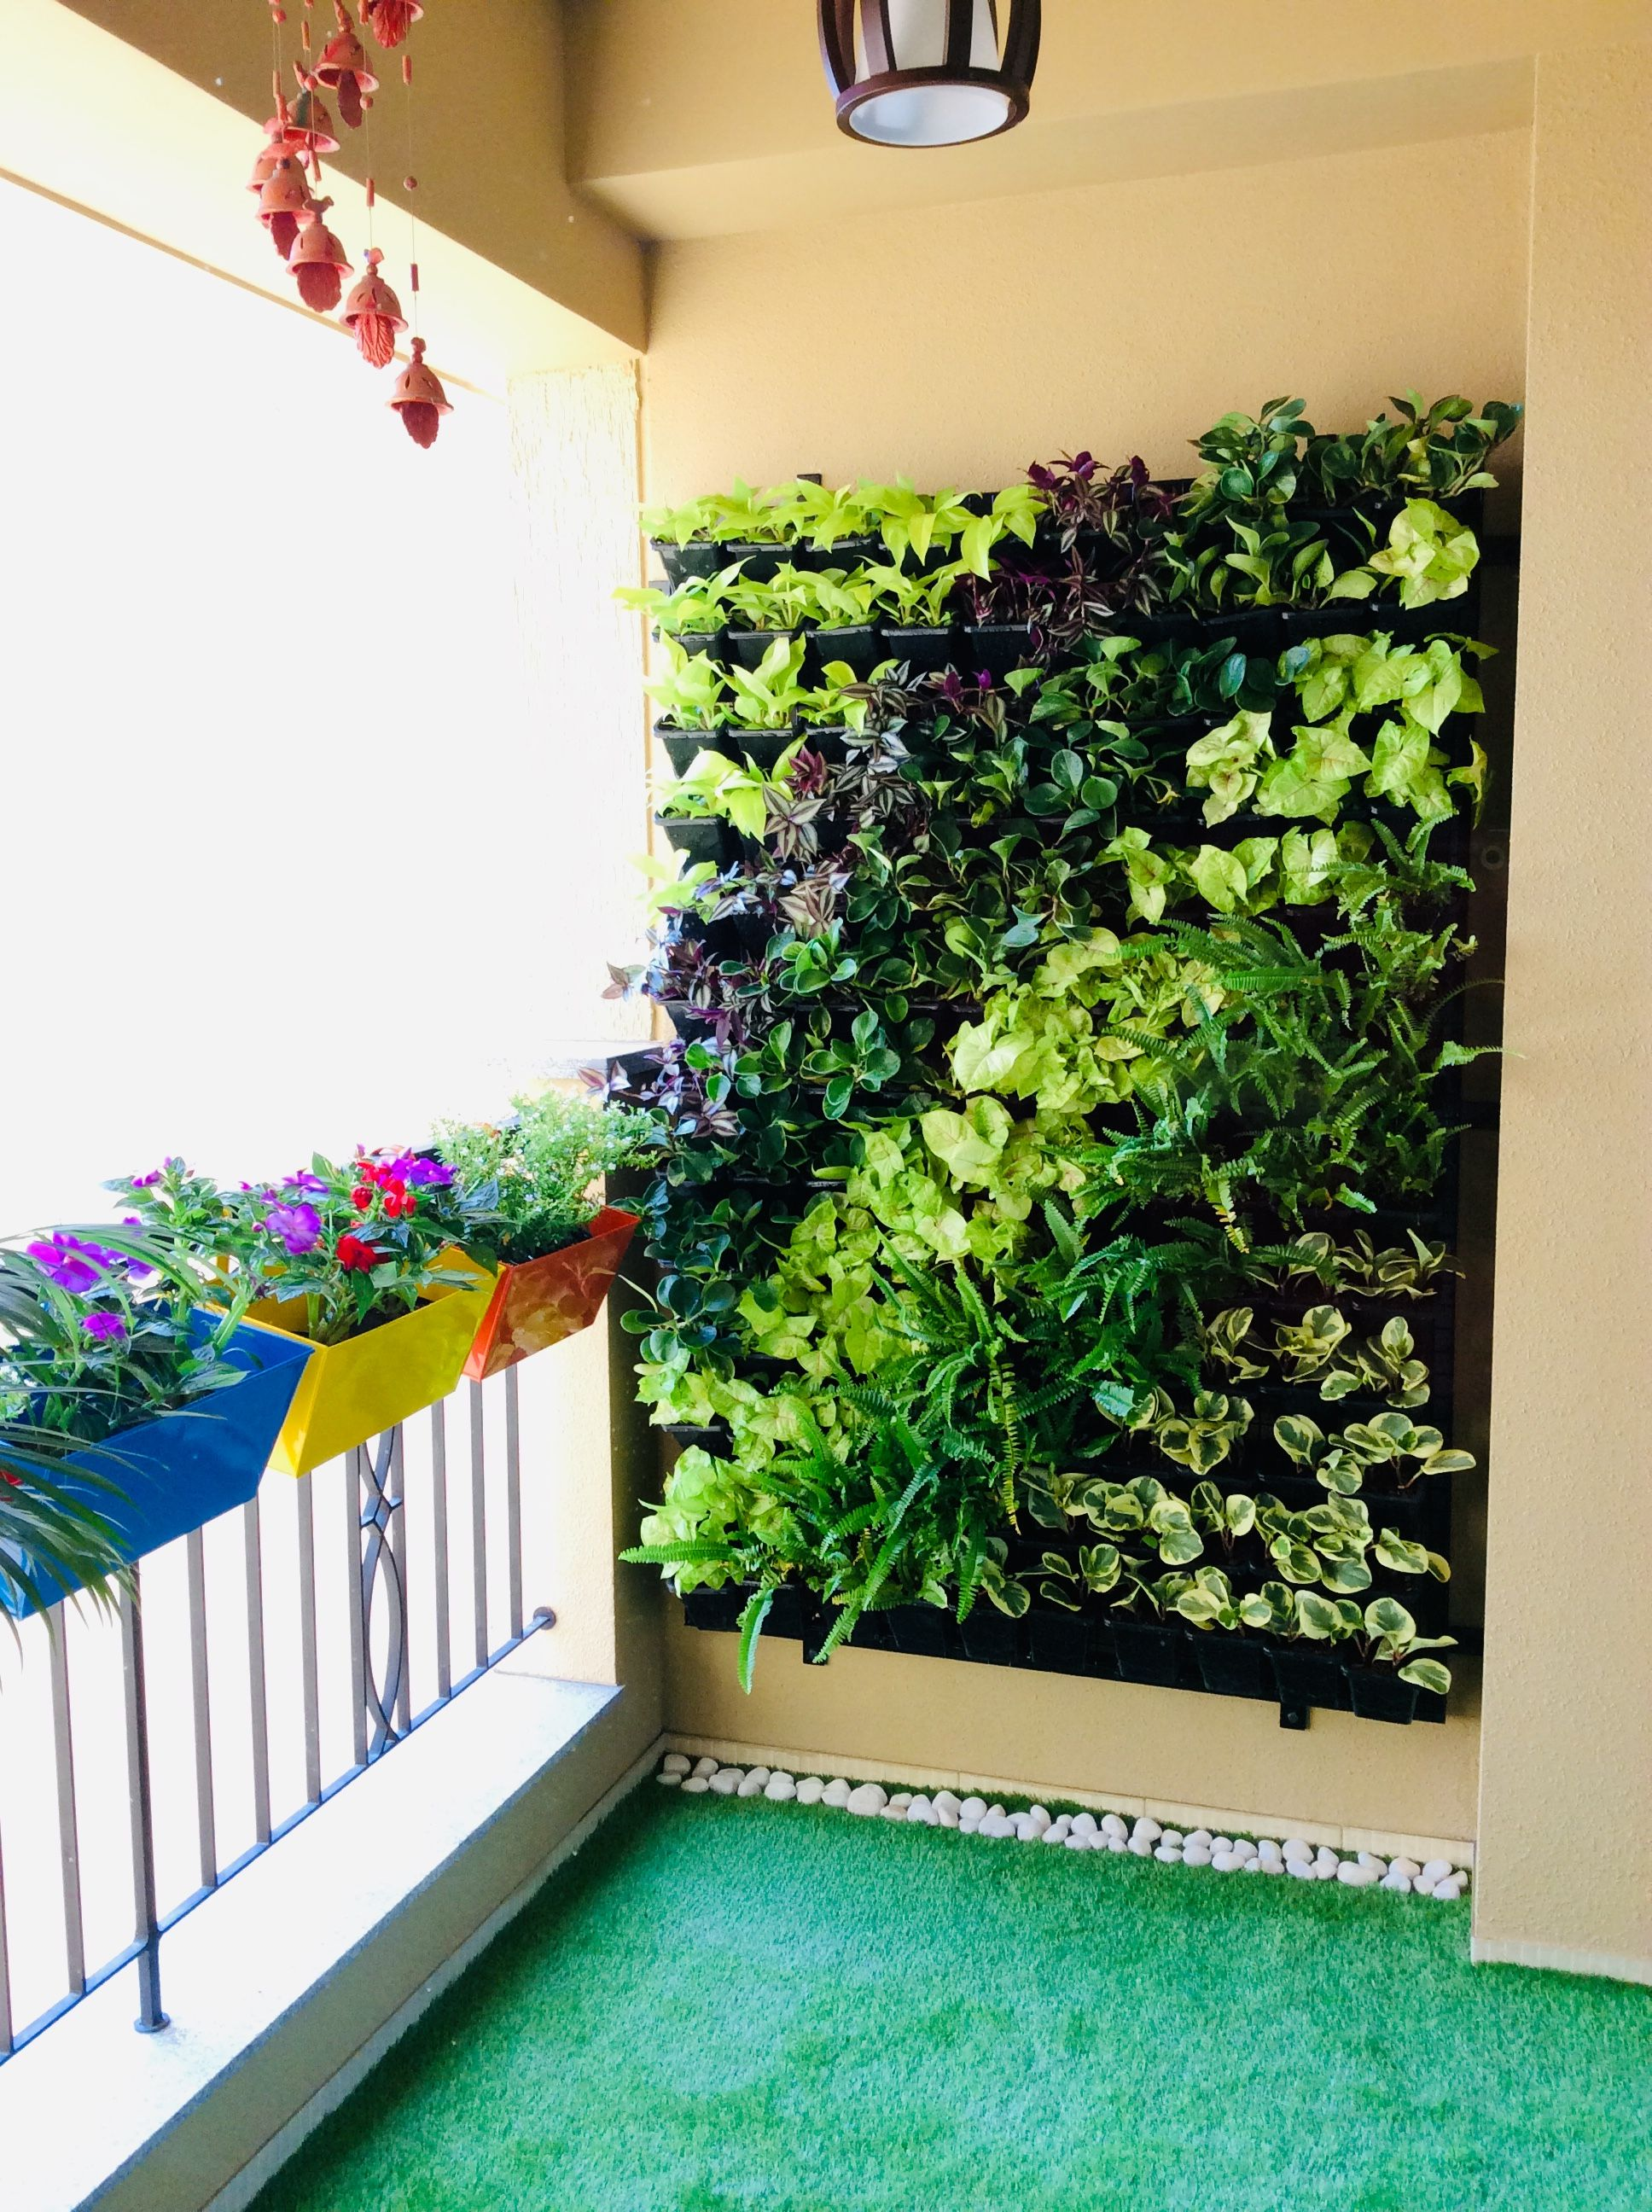 Green wall/Vertical Garden design done using many indoor